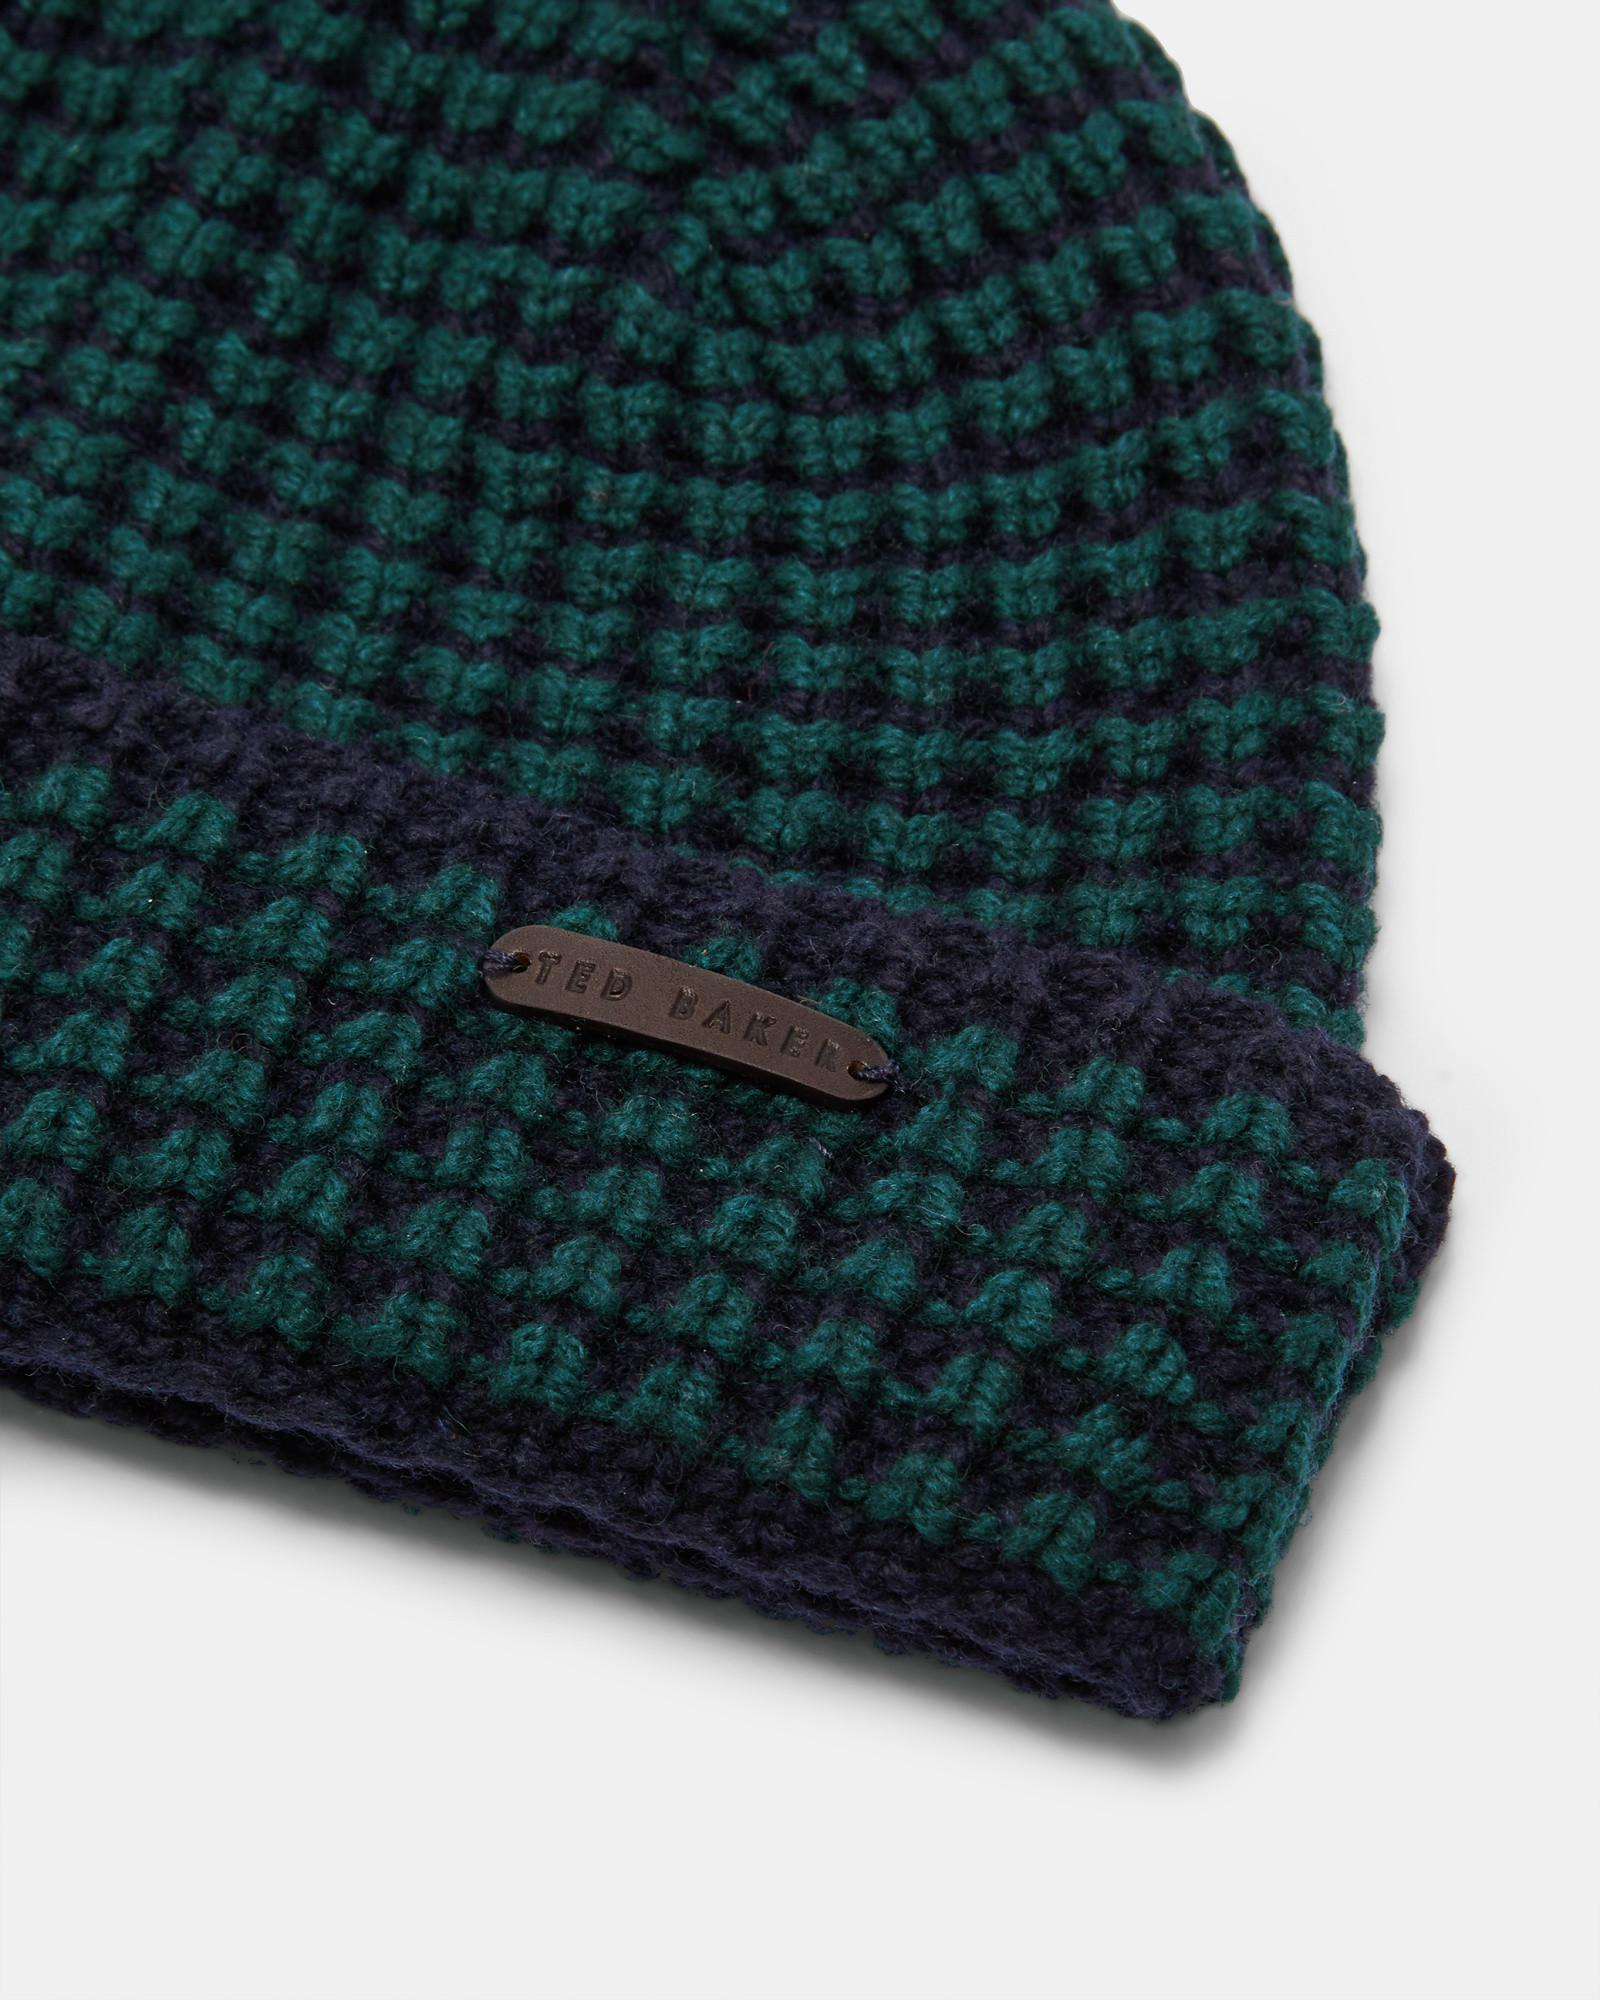 43e5f766d0c Ted Baker Wool And Cashmere-blend Beanie Hat in Blue for Men - Lyst